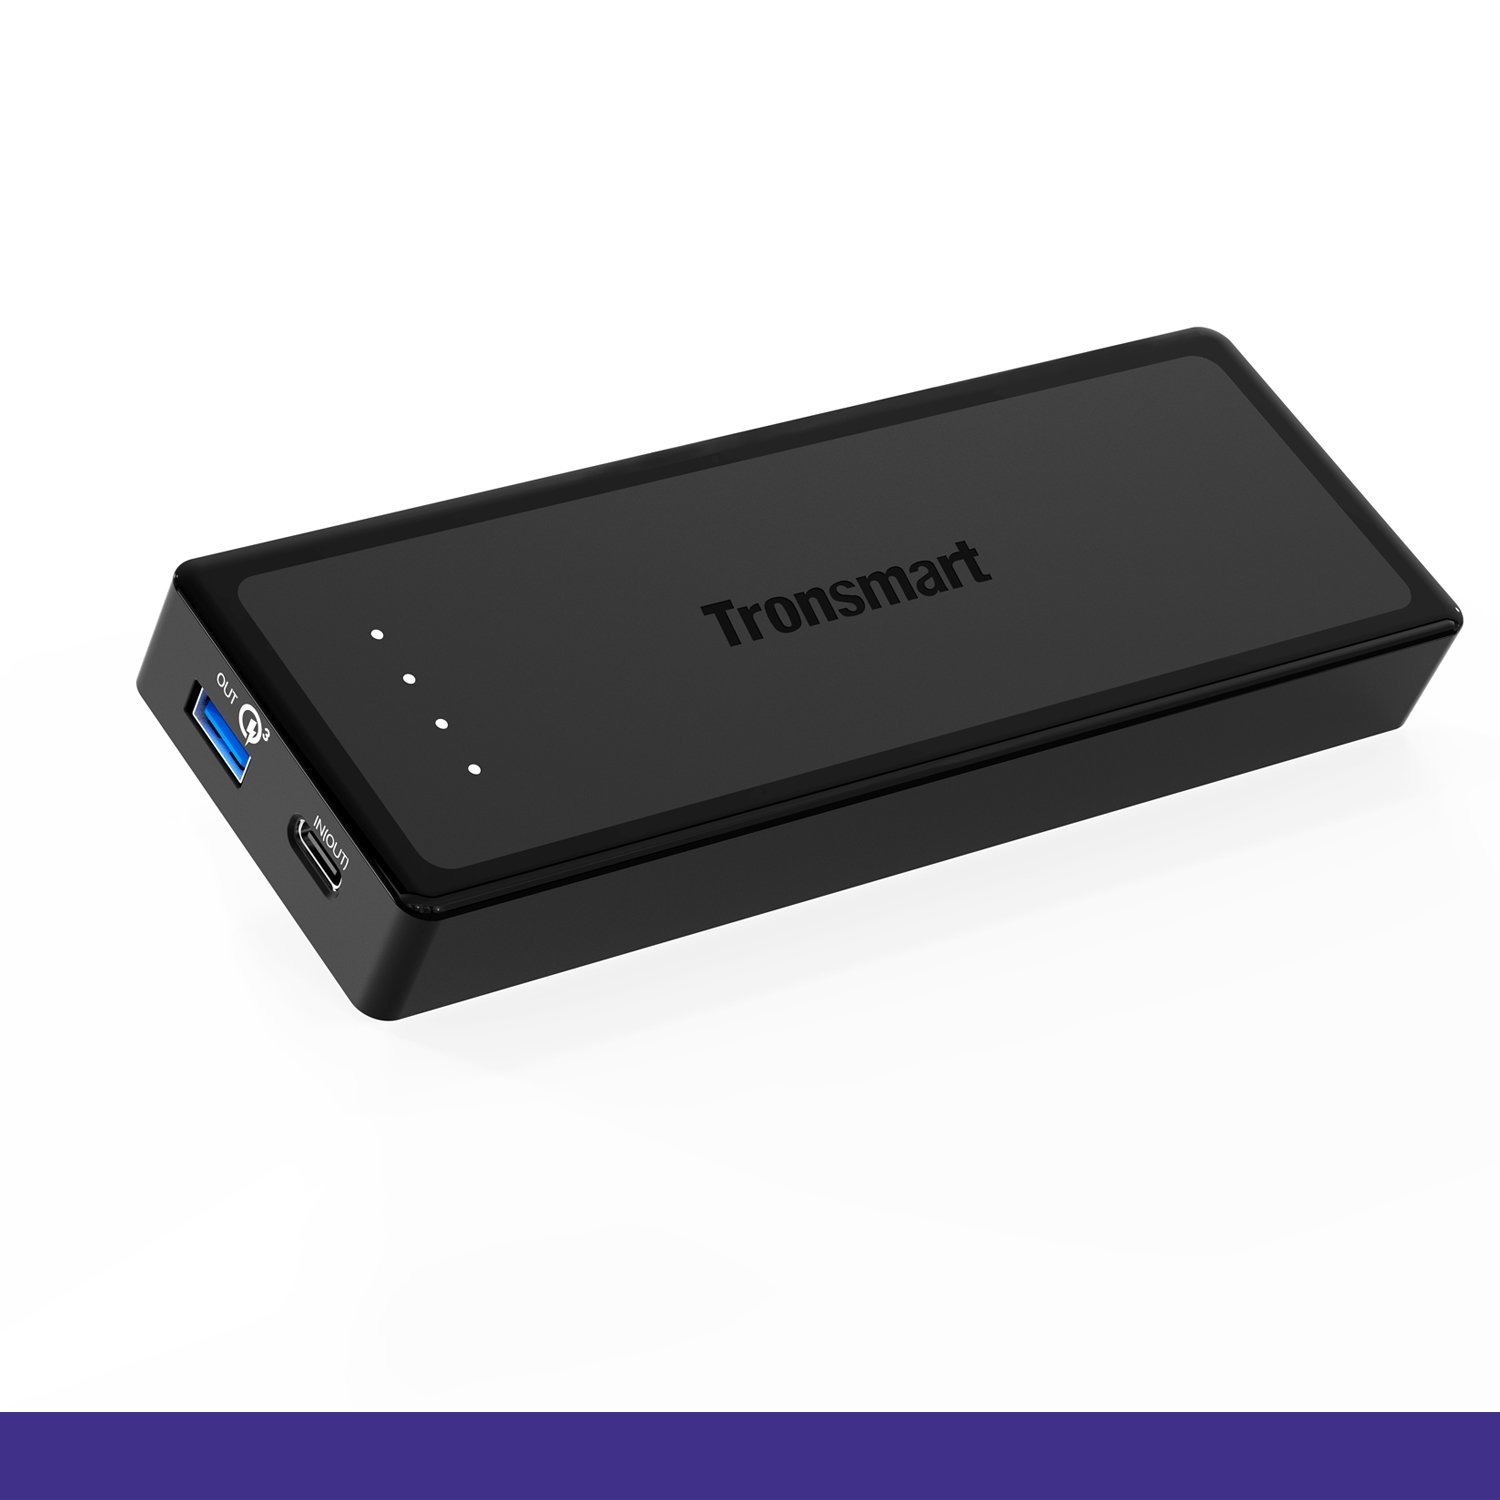 Tronsmart Presto 12,000 mAh Power Bank with Type-C Input & Output support Quick Charge 3.0